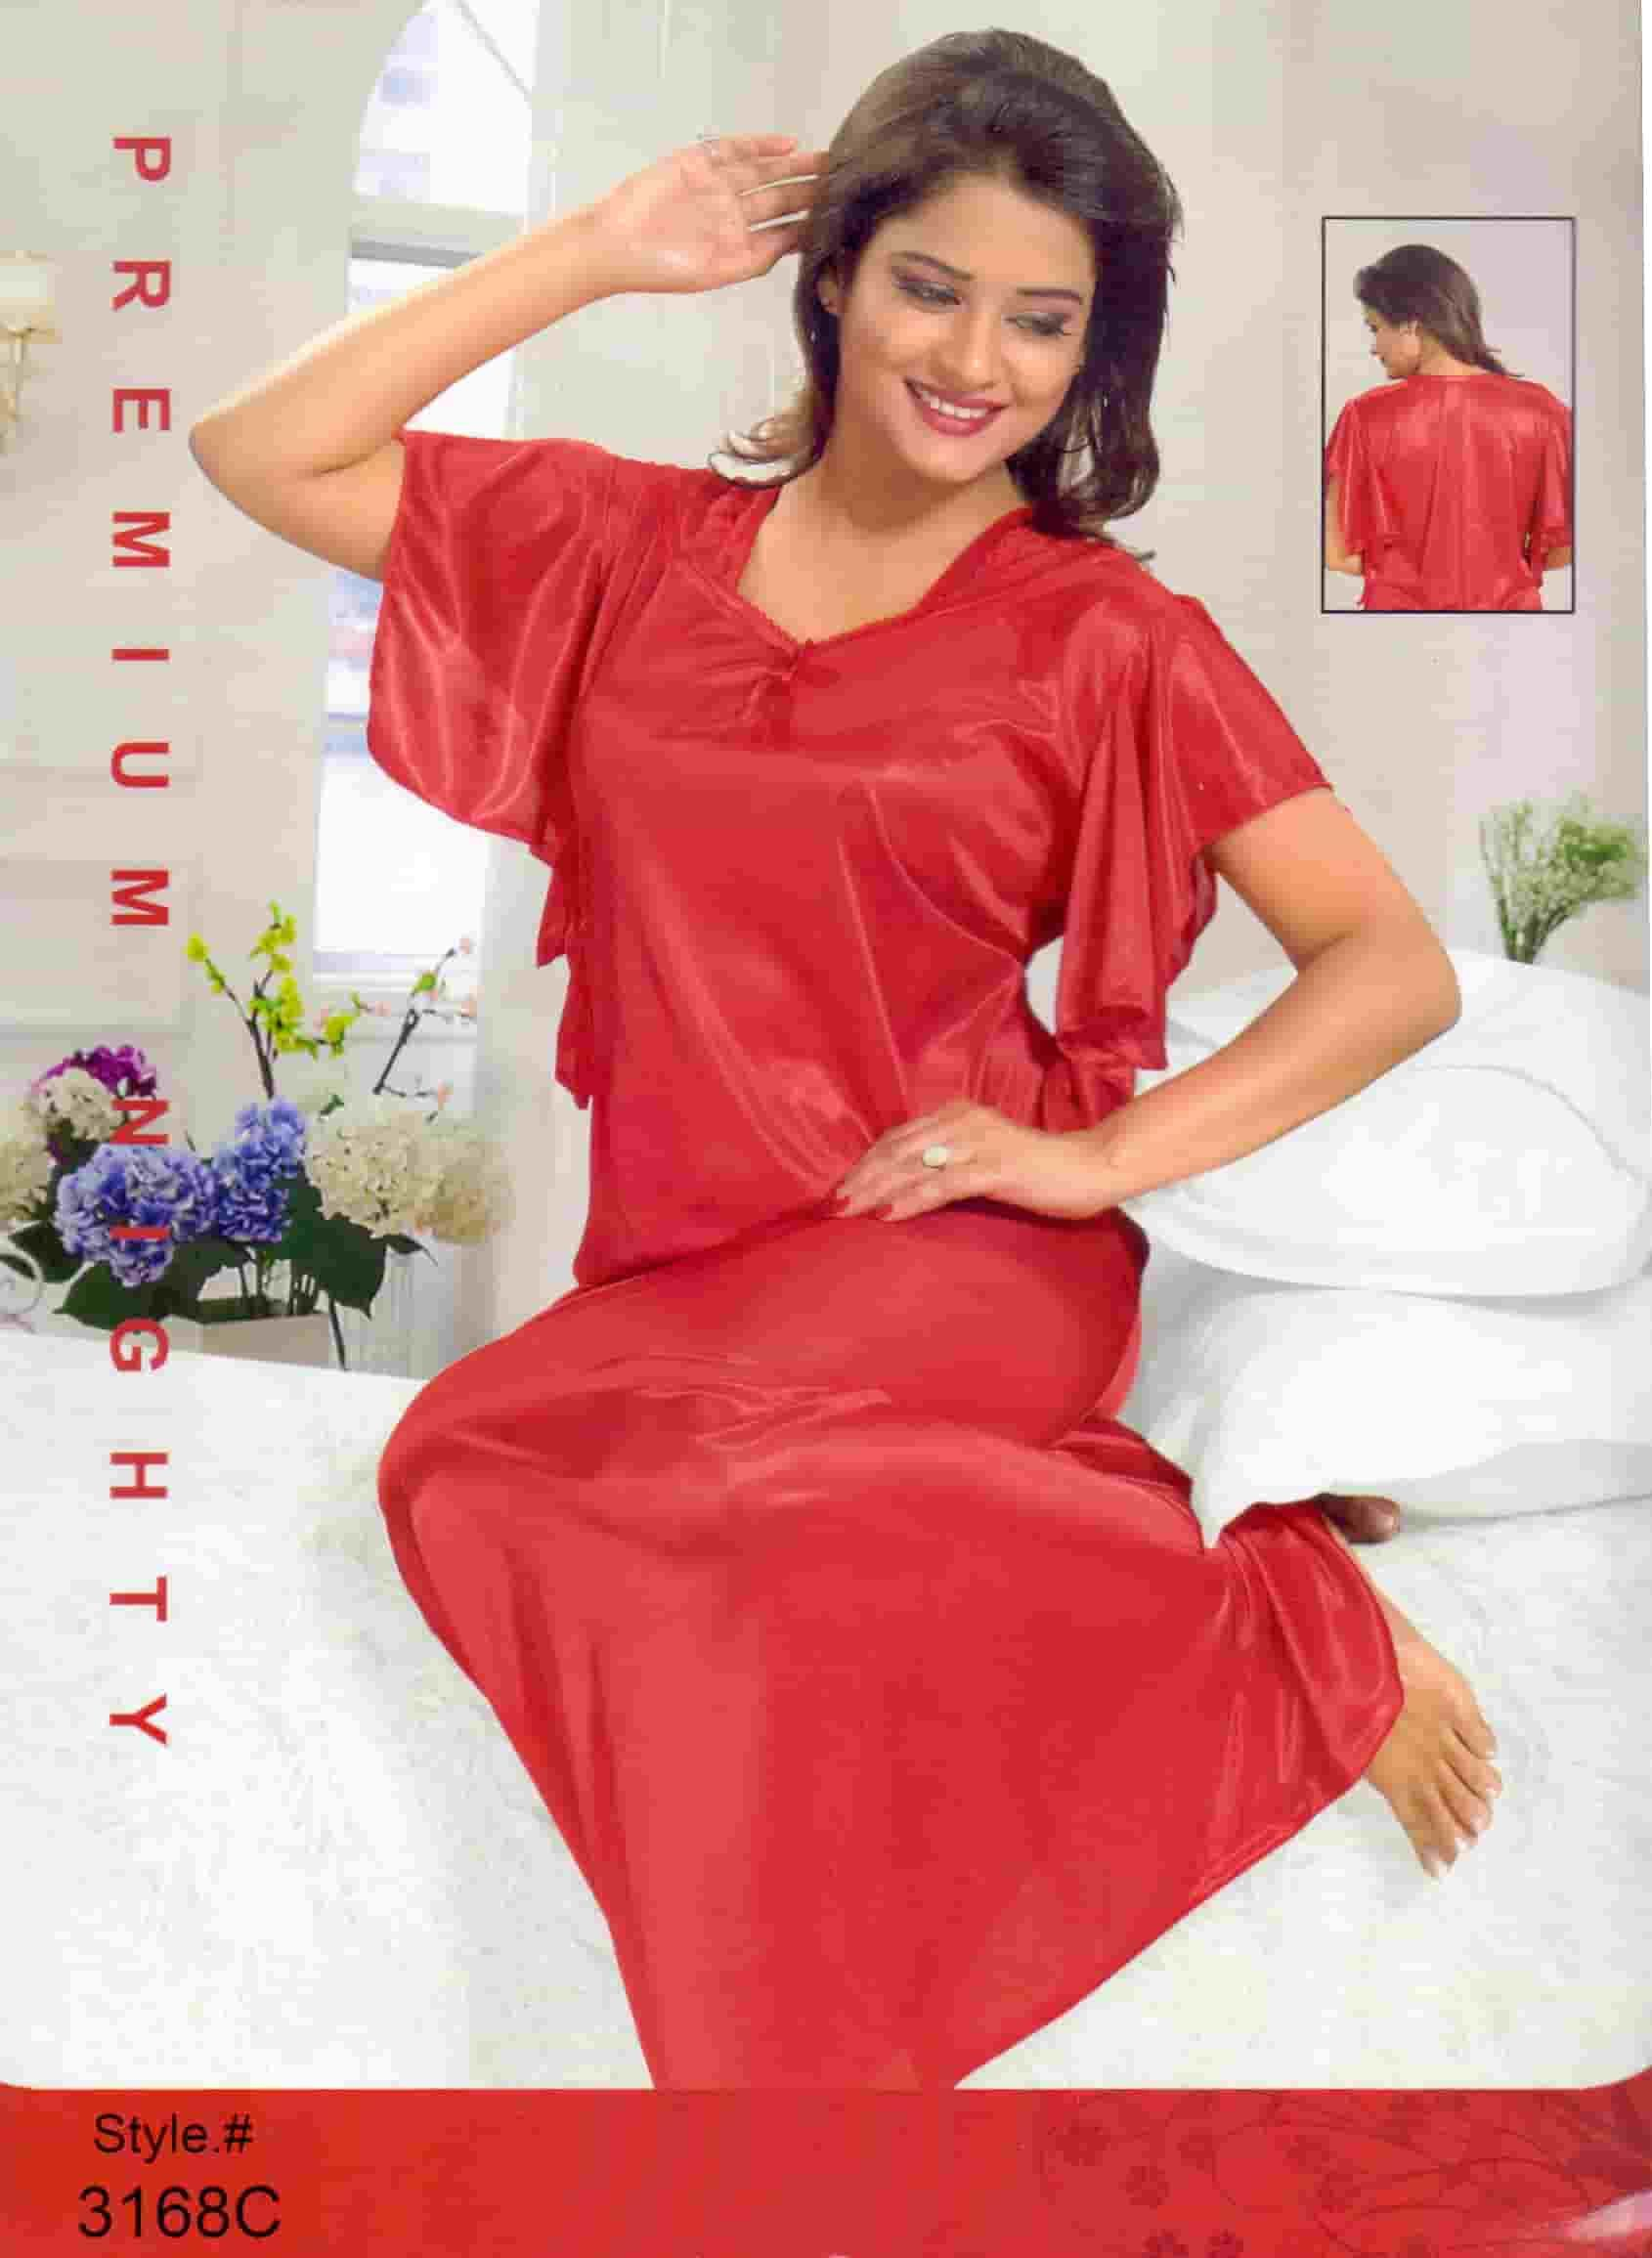 f9212a2c1a3c Nighty for #Honeymoon, Night Dress for First Wedding #Night #sohojshop